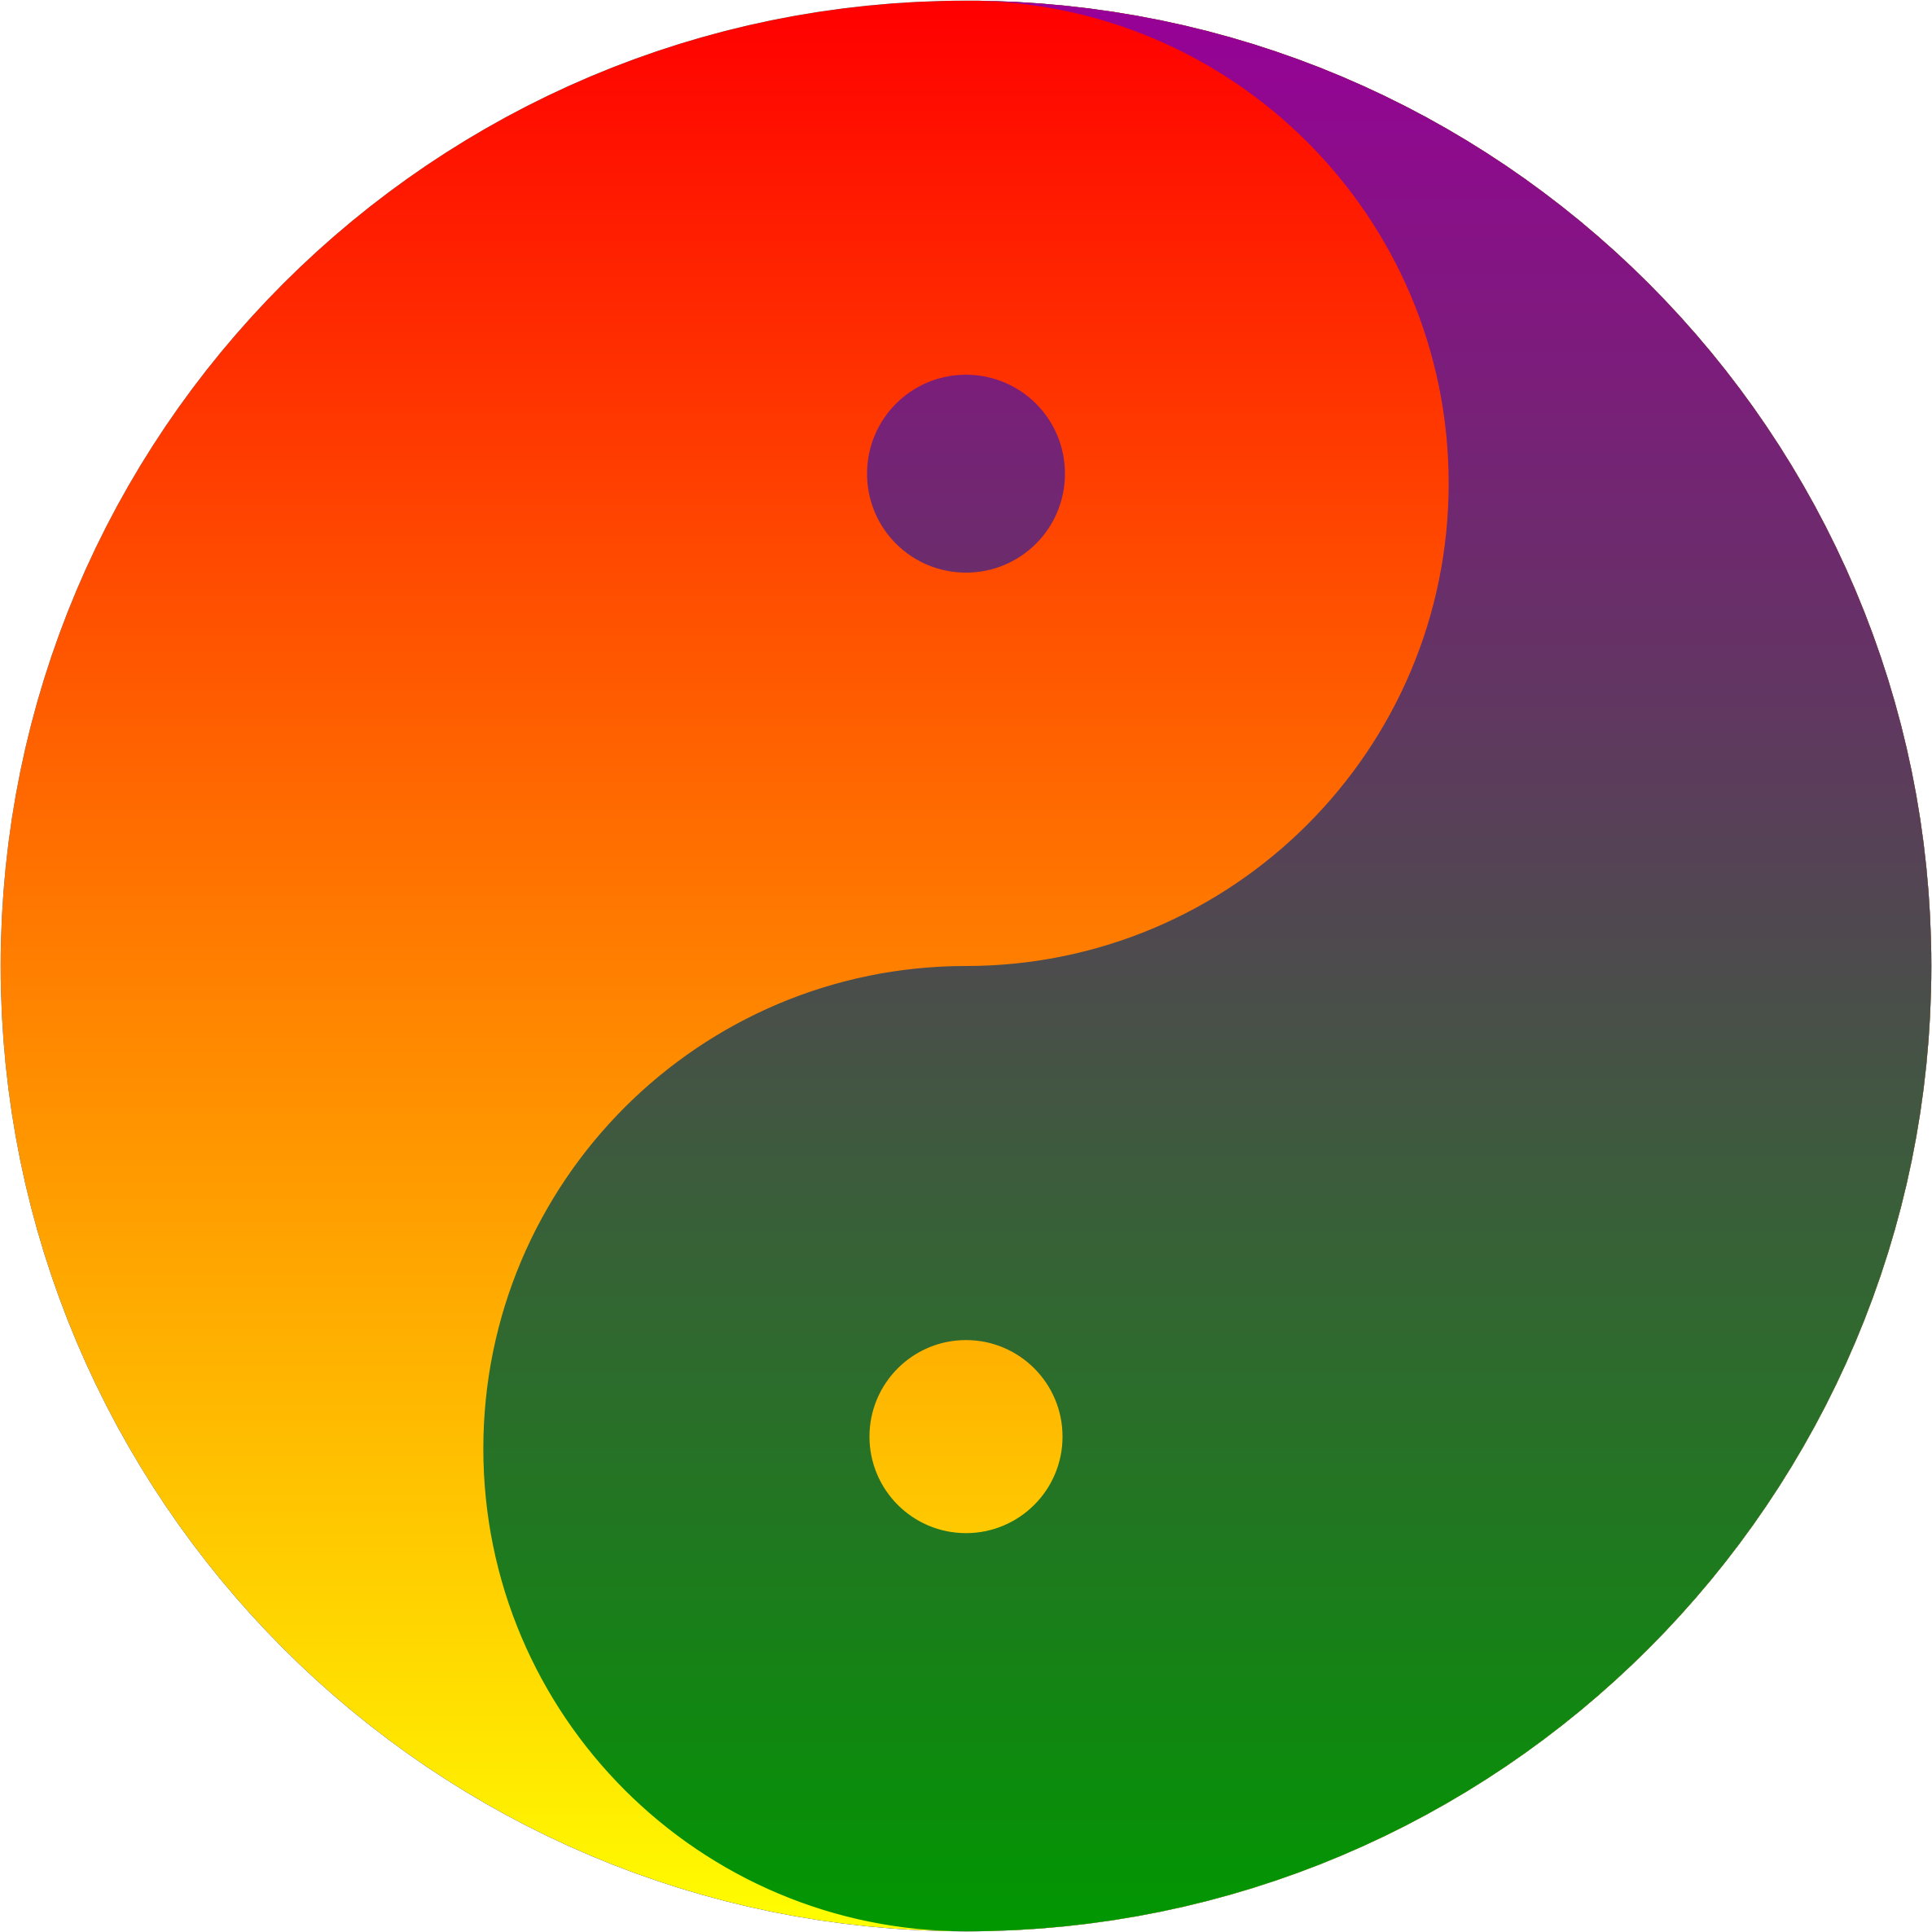 Free yin yang clipart free clipart graphics images and photos image ...